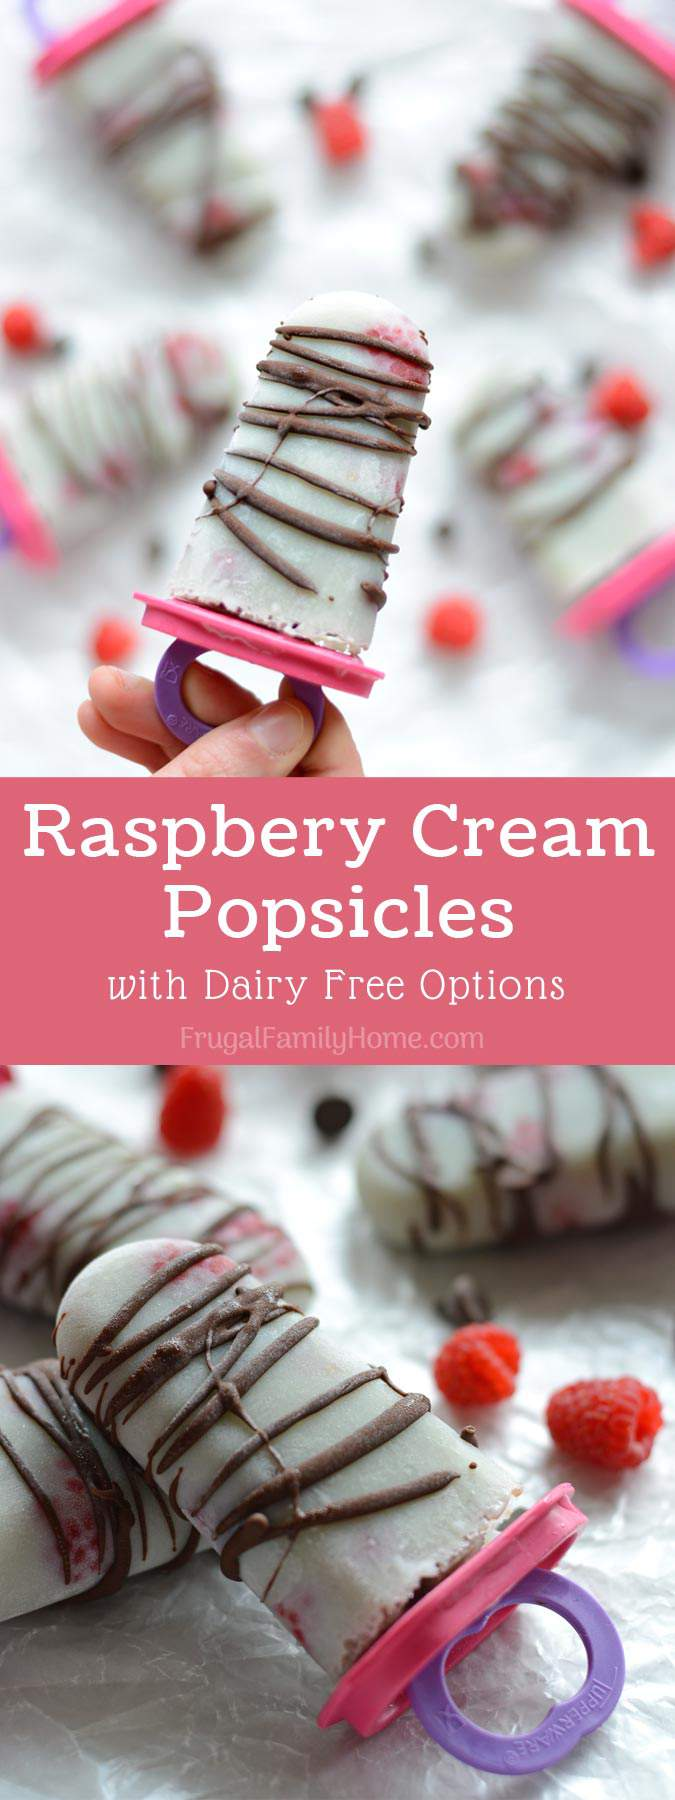 Raspberry Cream Popsicles, these popsicles make a healthy summer dessert for everyone. It's a super easy recipe with only 3 ingredients needed. You can use coconut milk to make them dairy free too.